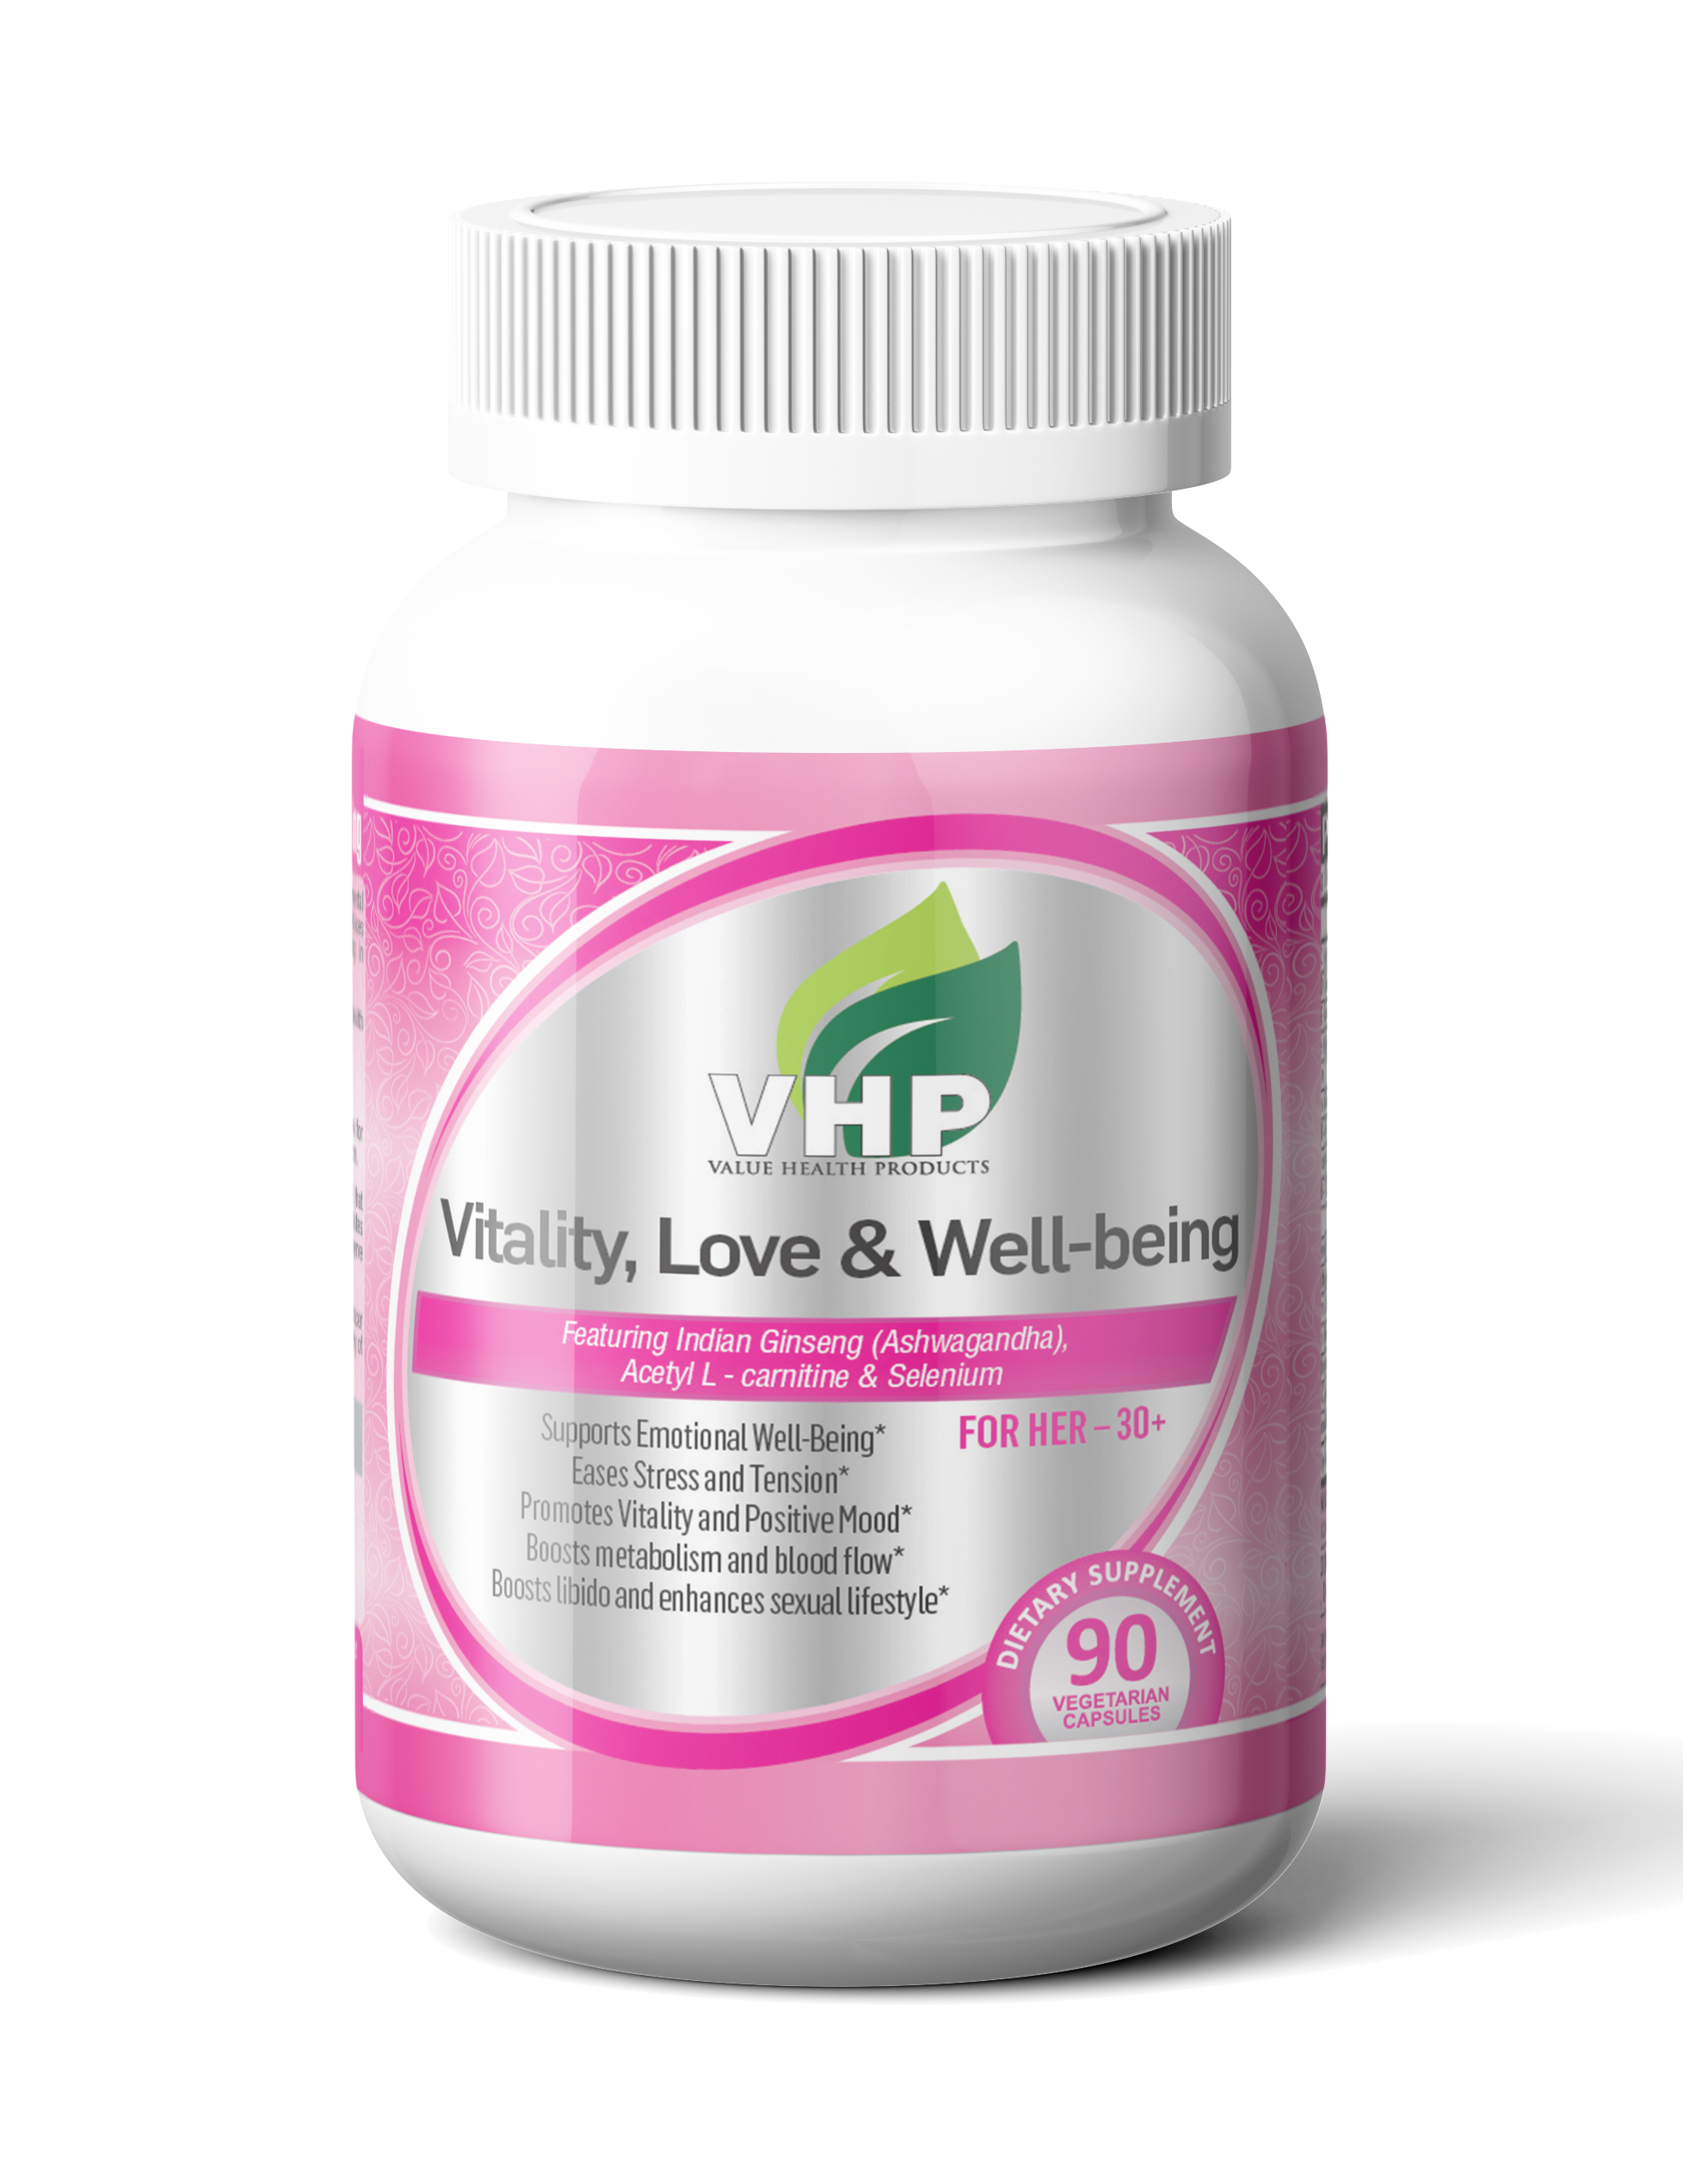 Home - image Vitality-Love-Well-being-supplement-for-women on https://www.valuehealthproducts.com